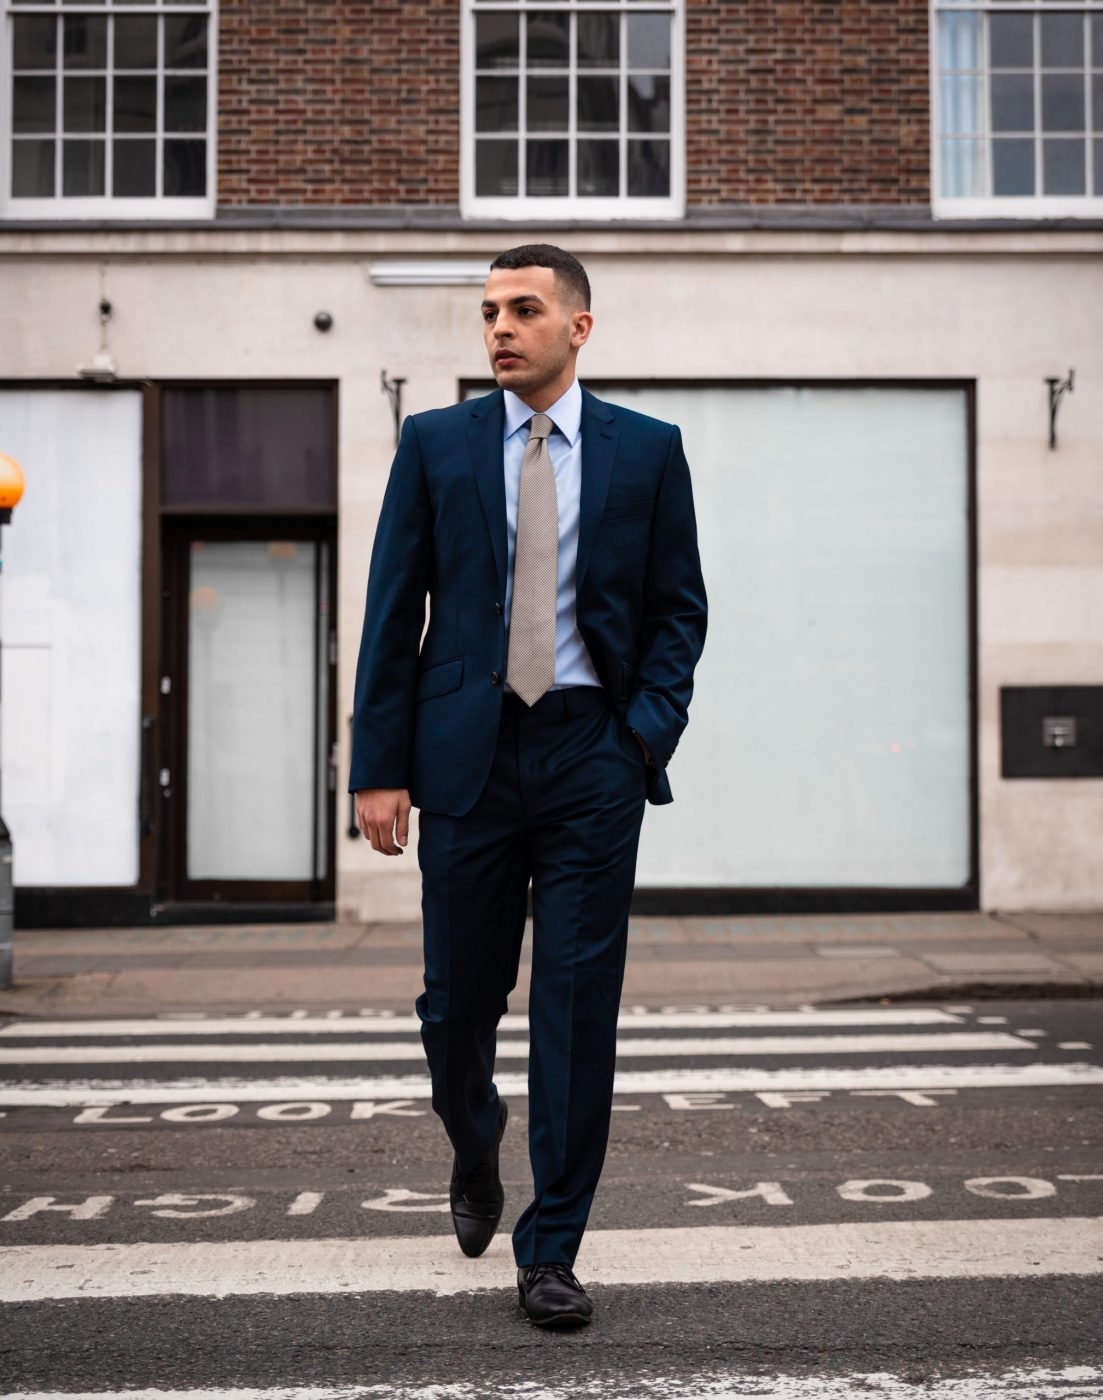 Nickson Shirt Model on zebra crossing wearing a blue slim fit shirt and Business Suit